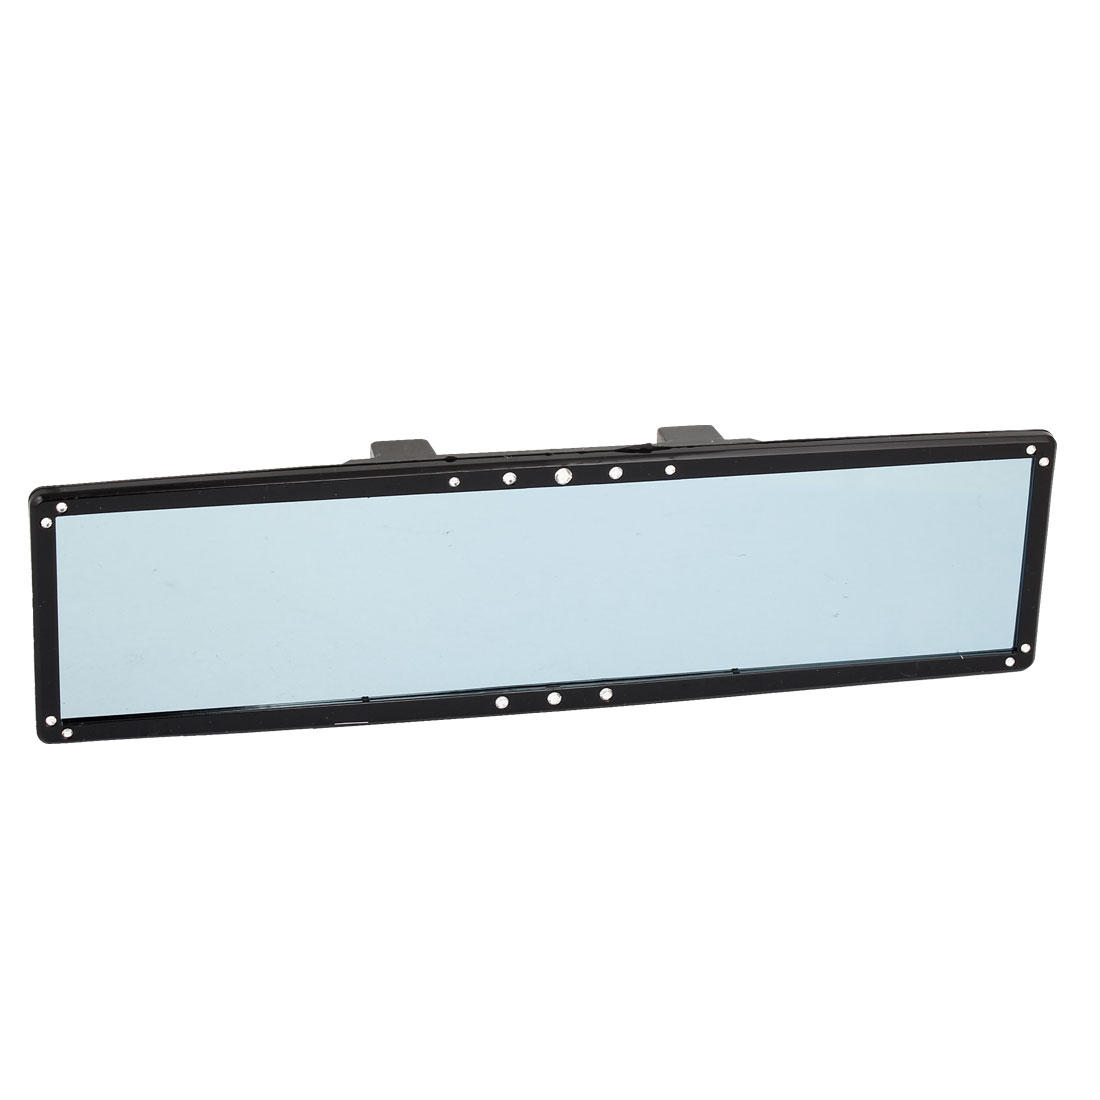 280mm Wide Flat Black Frame Auto Car Interior Wide Blue Rearview Mirror